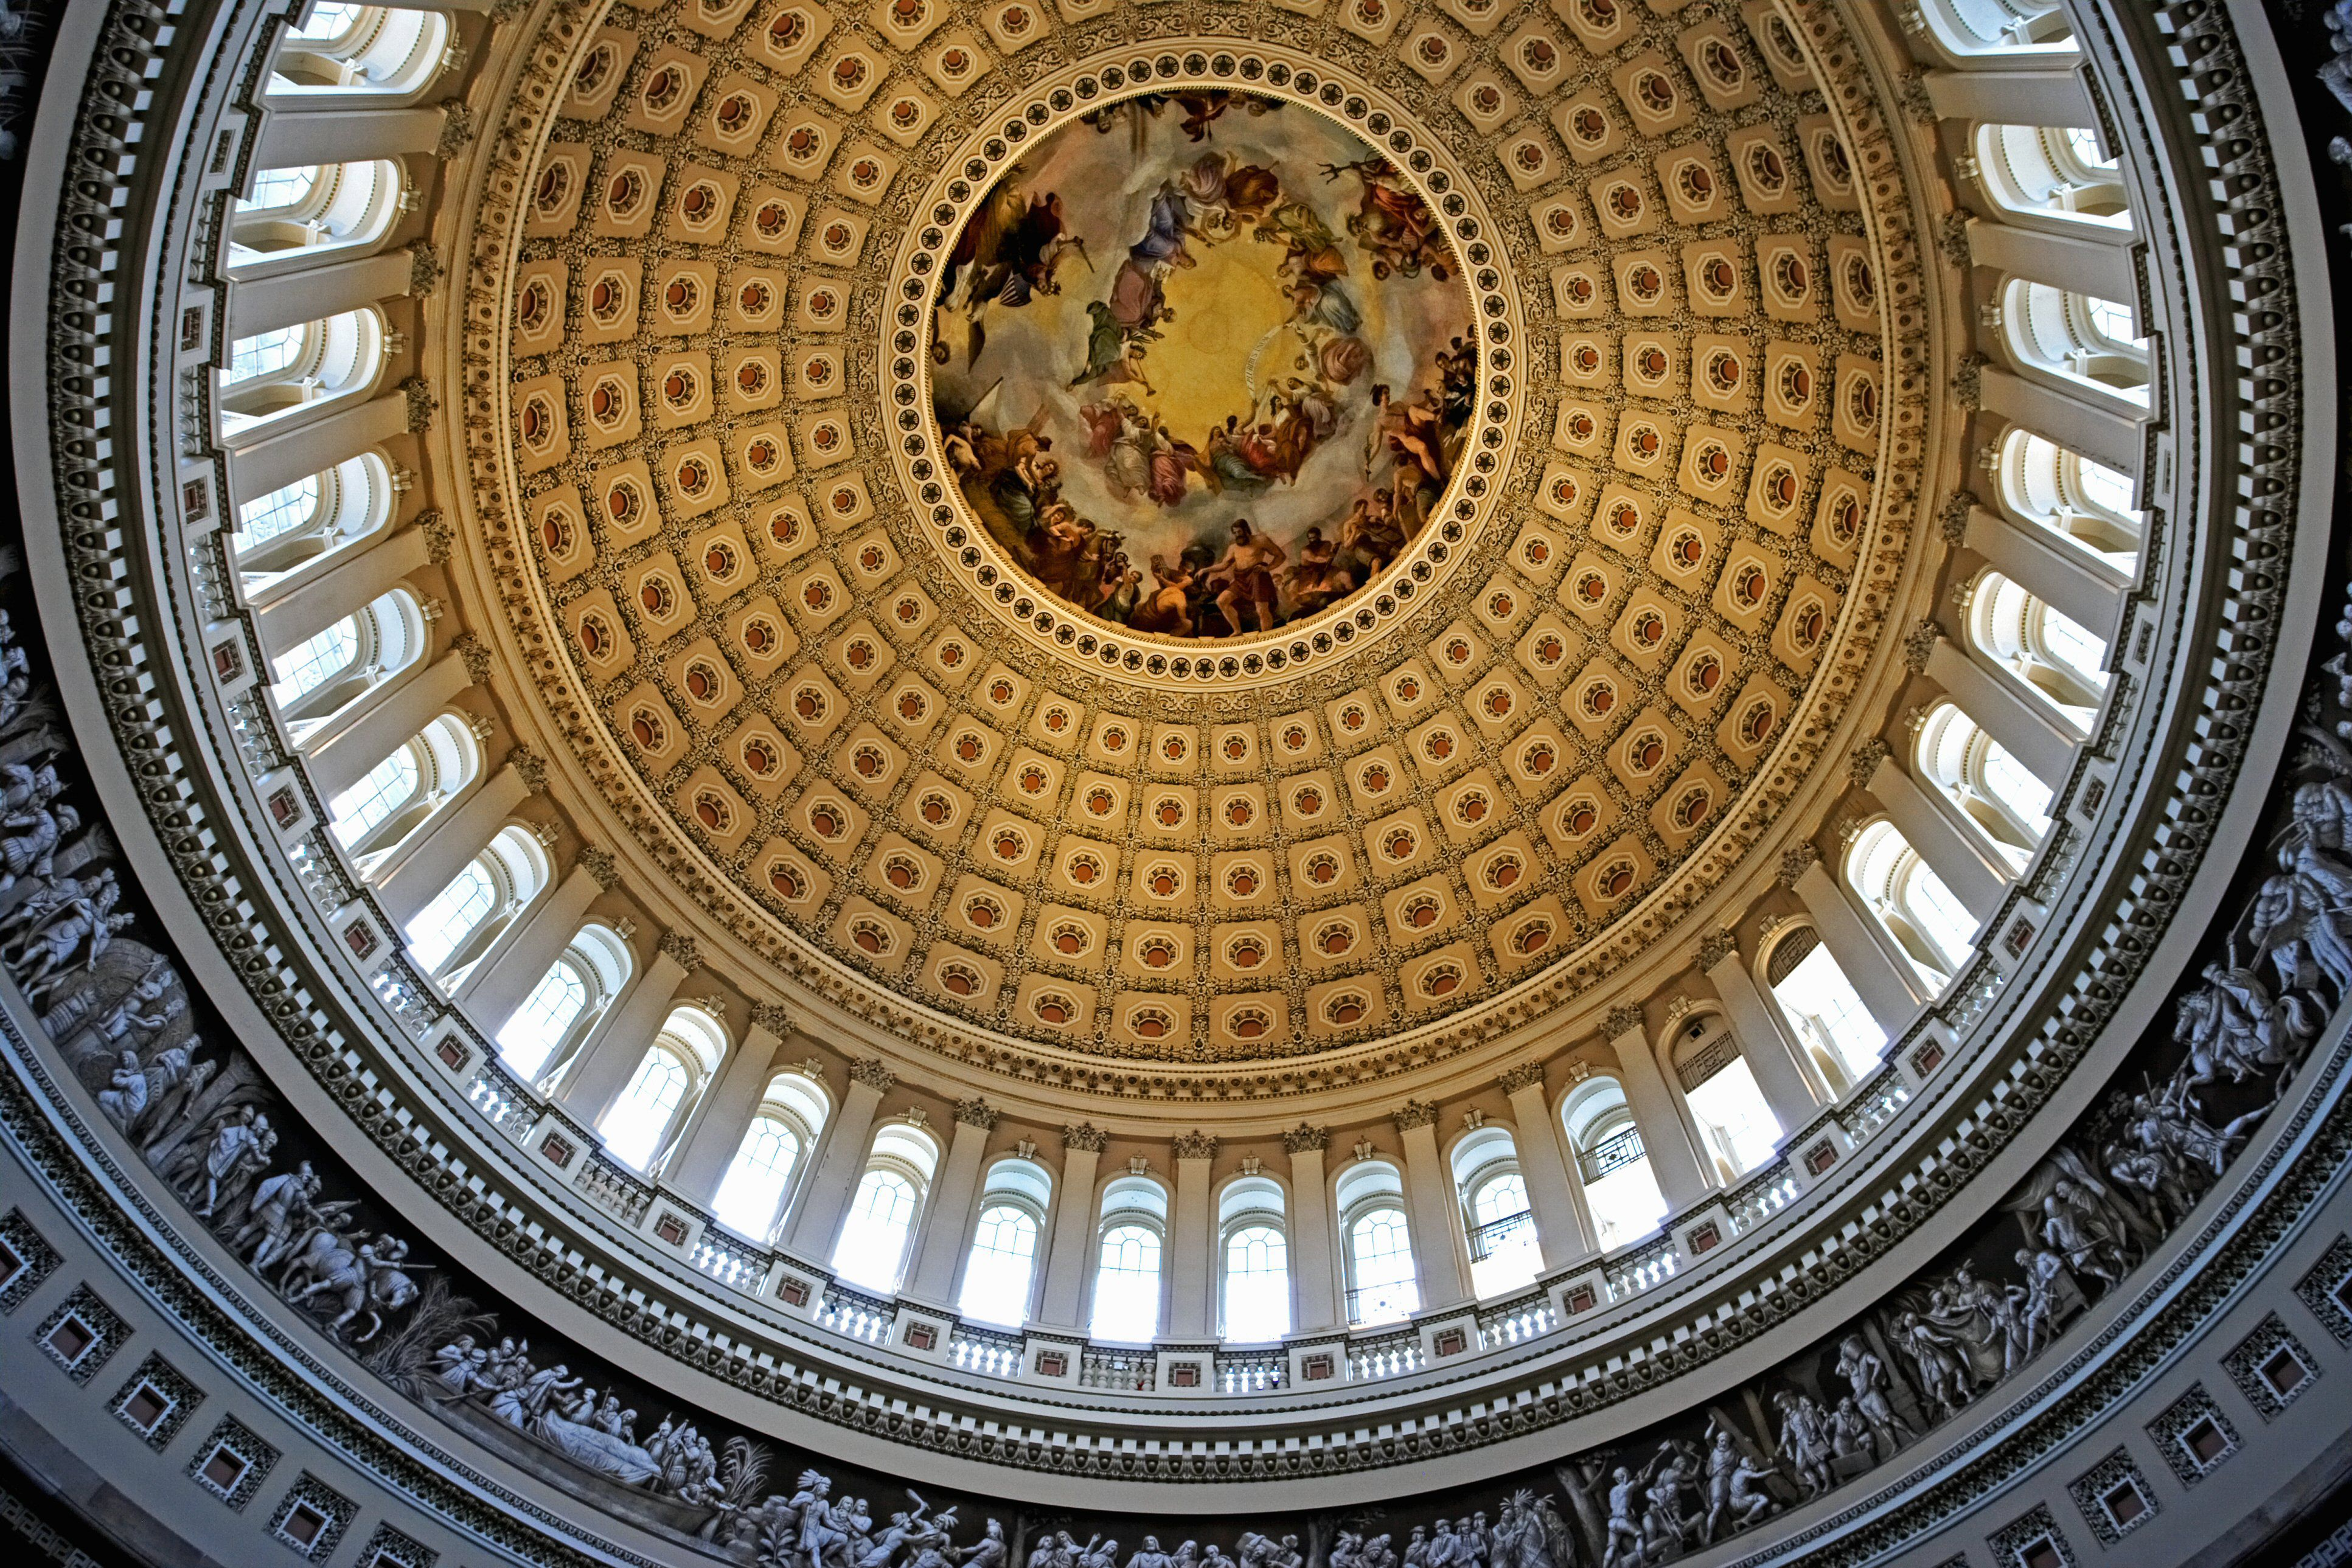 Interior view from below dome, round, windows around the bottom, coffered ceiling with mural in round center top